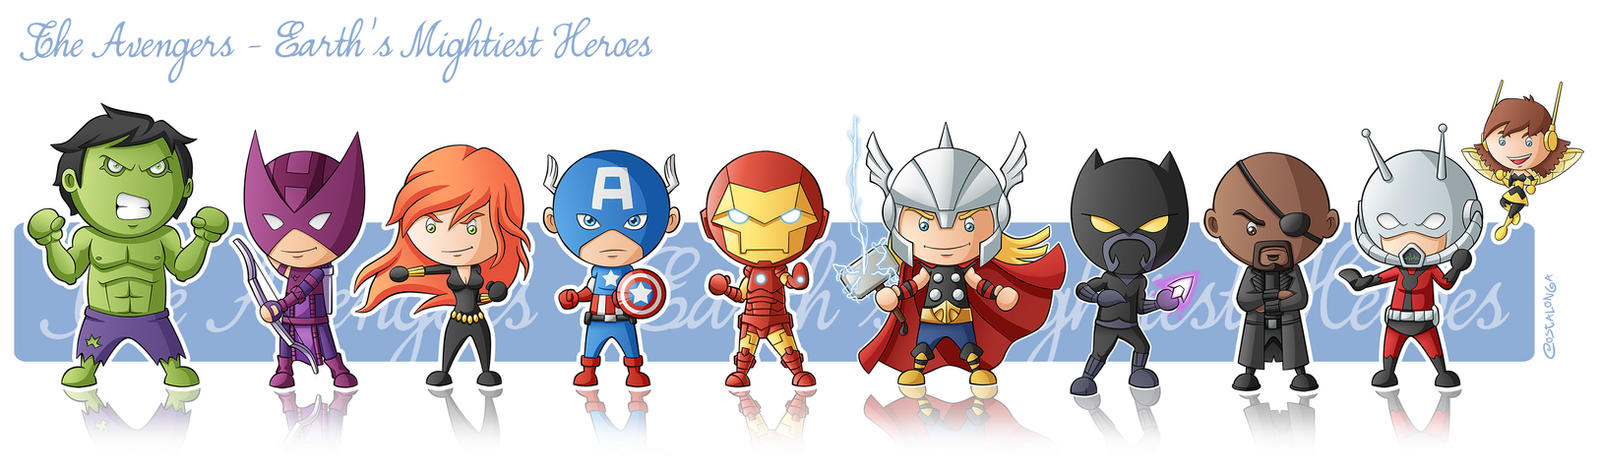 The Avengers  MiniGeeks by Costalonga